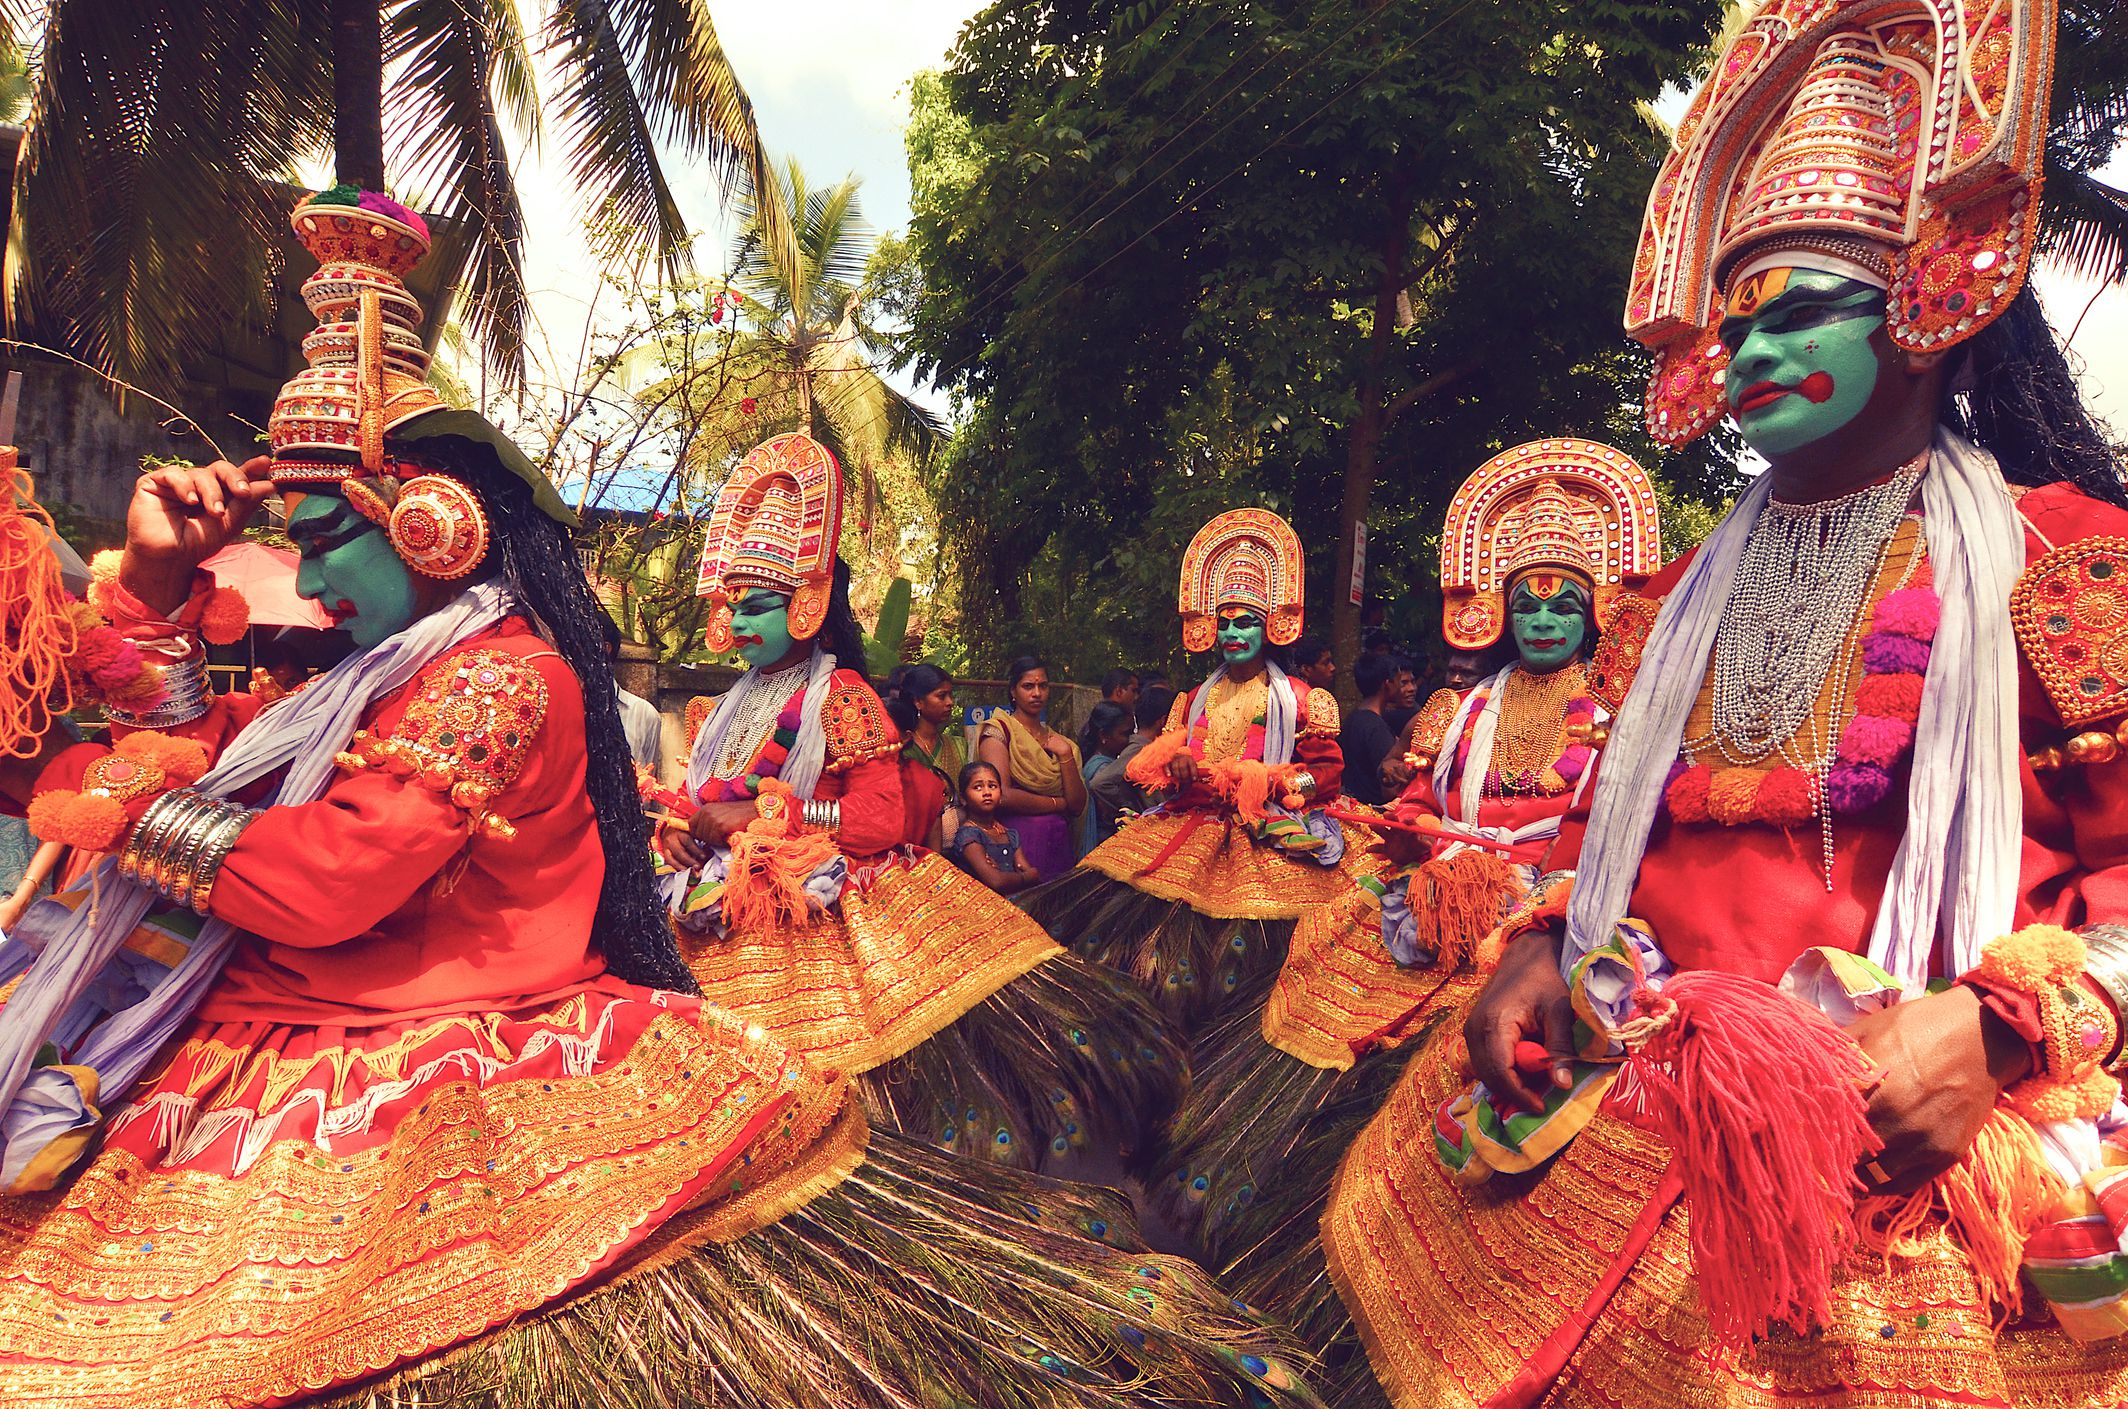 6 Kerala Onam Festival Attractions With 2018 Dates